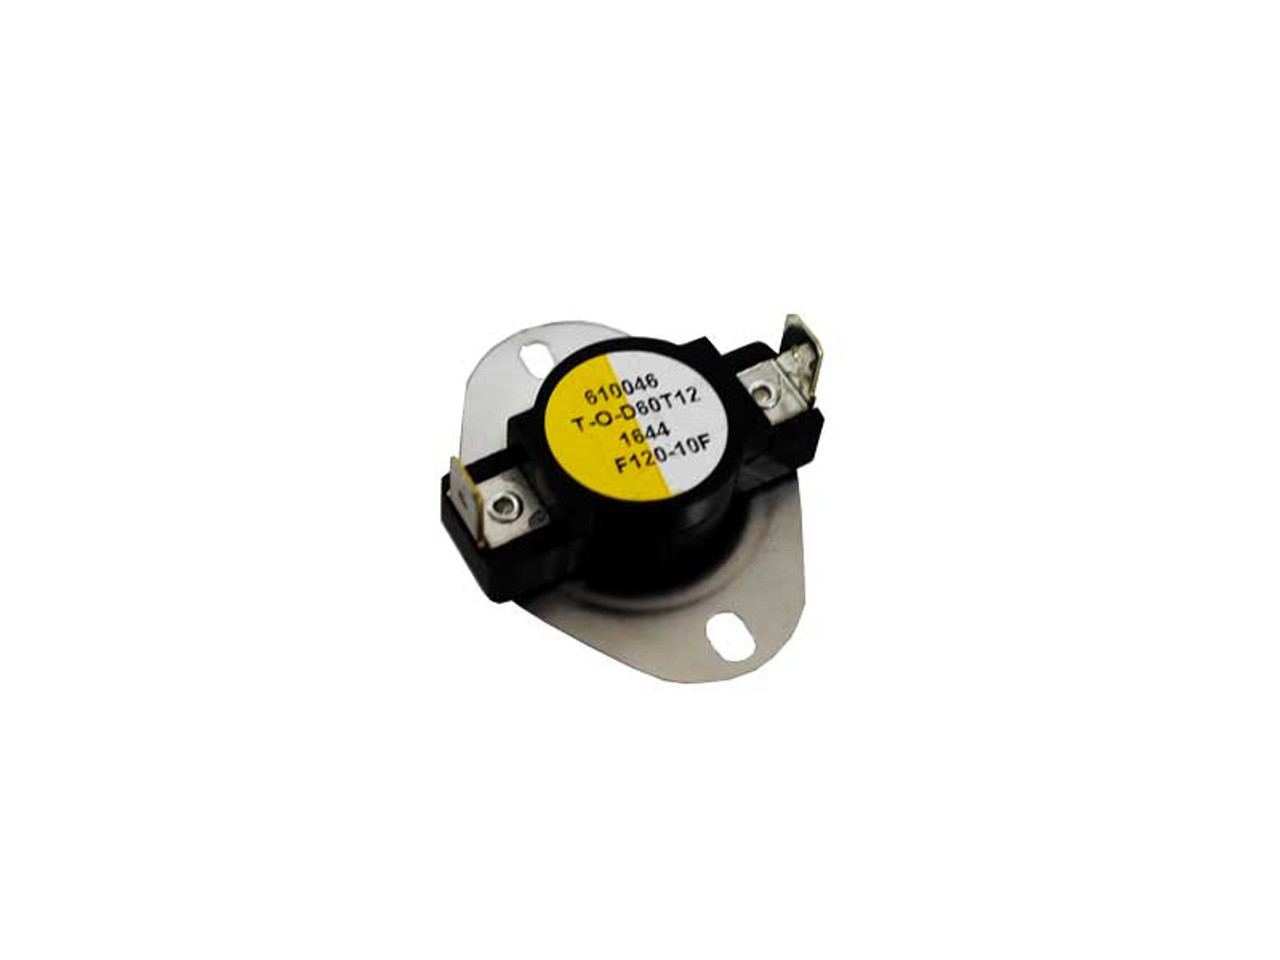 Low Limit Fan Switch - Snap Disc 120 (13-1122)